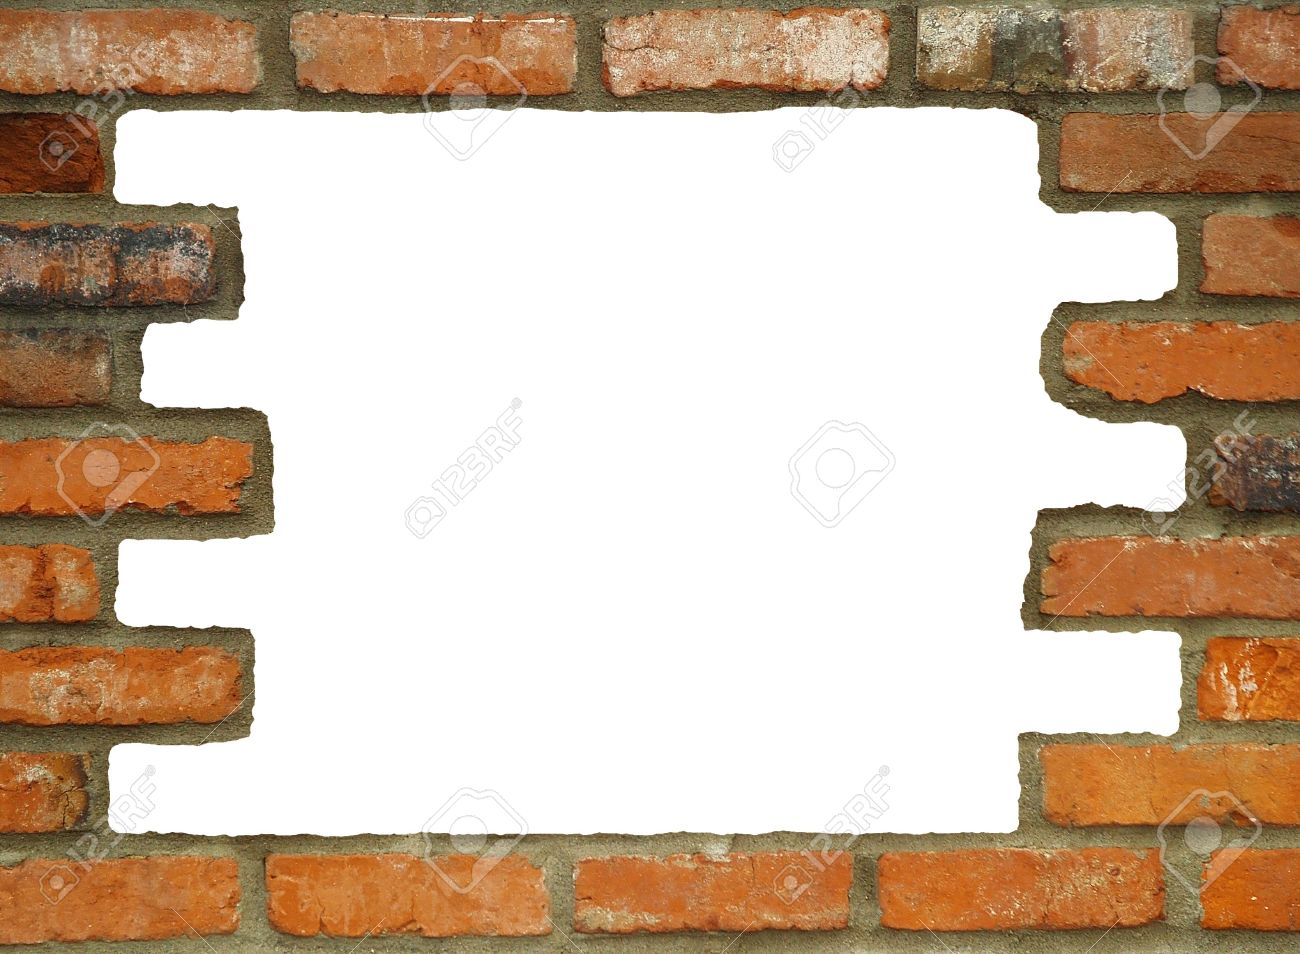 Brick Wall Background/frame With Large White Hole, In Various ...